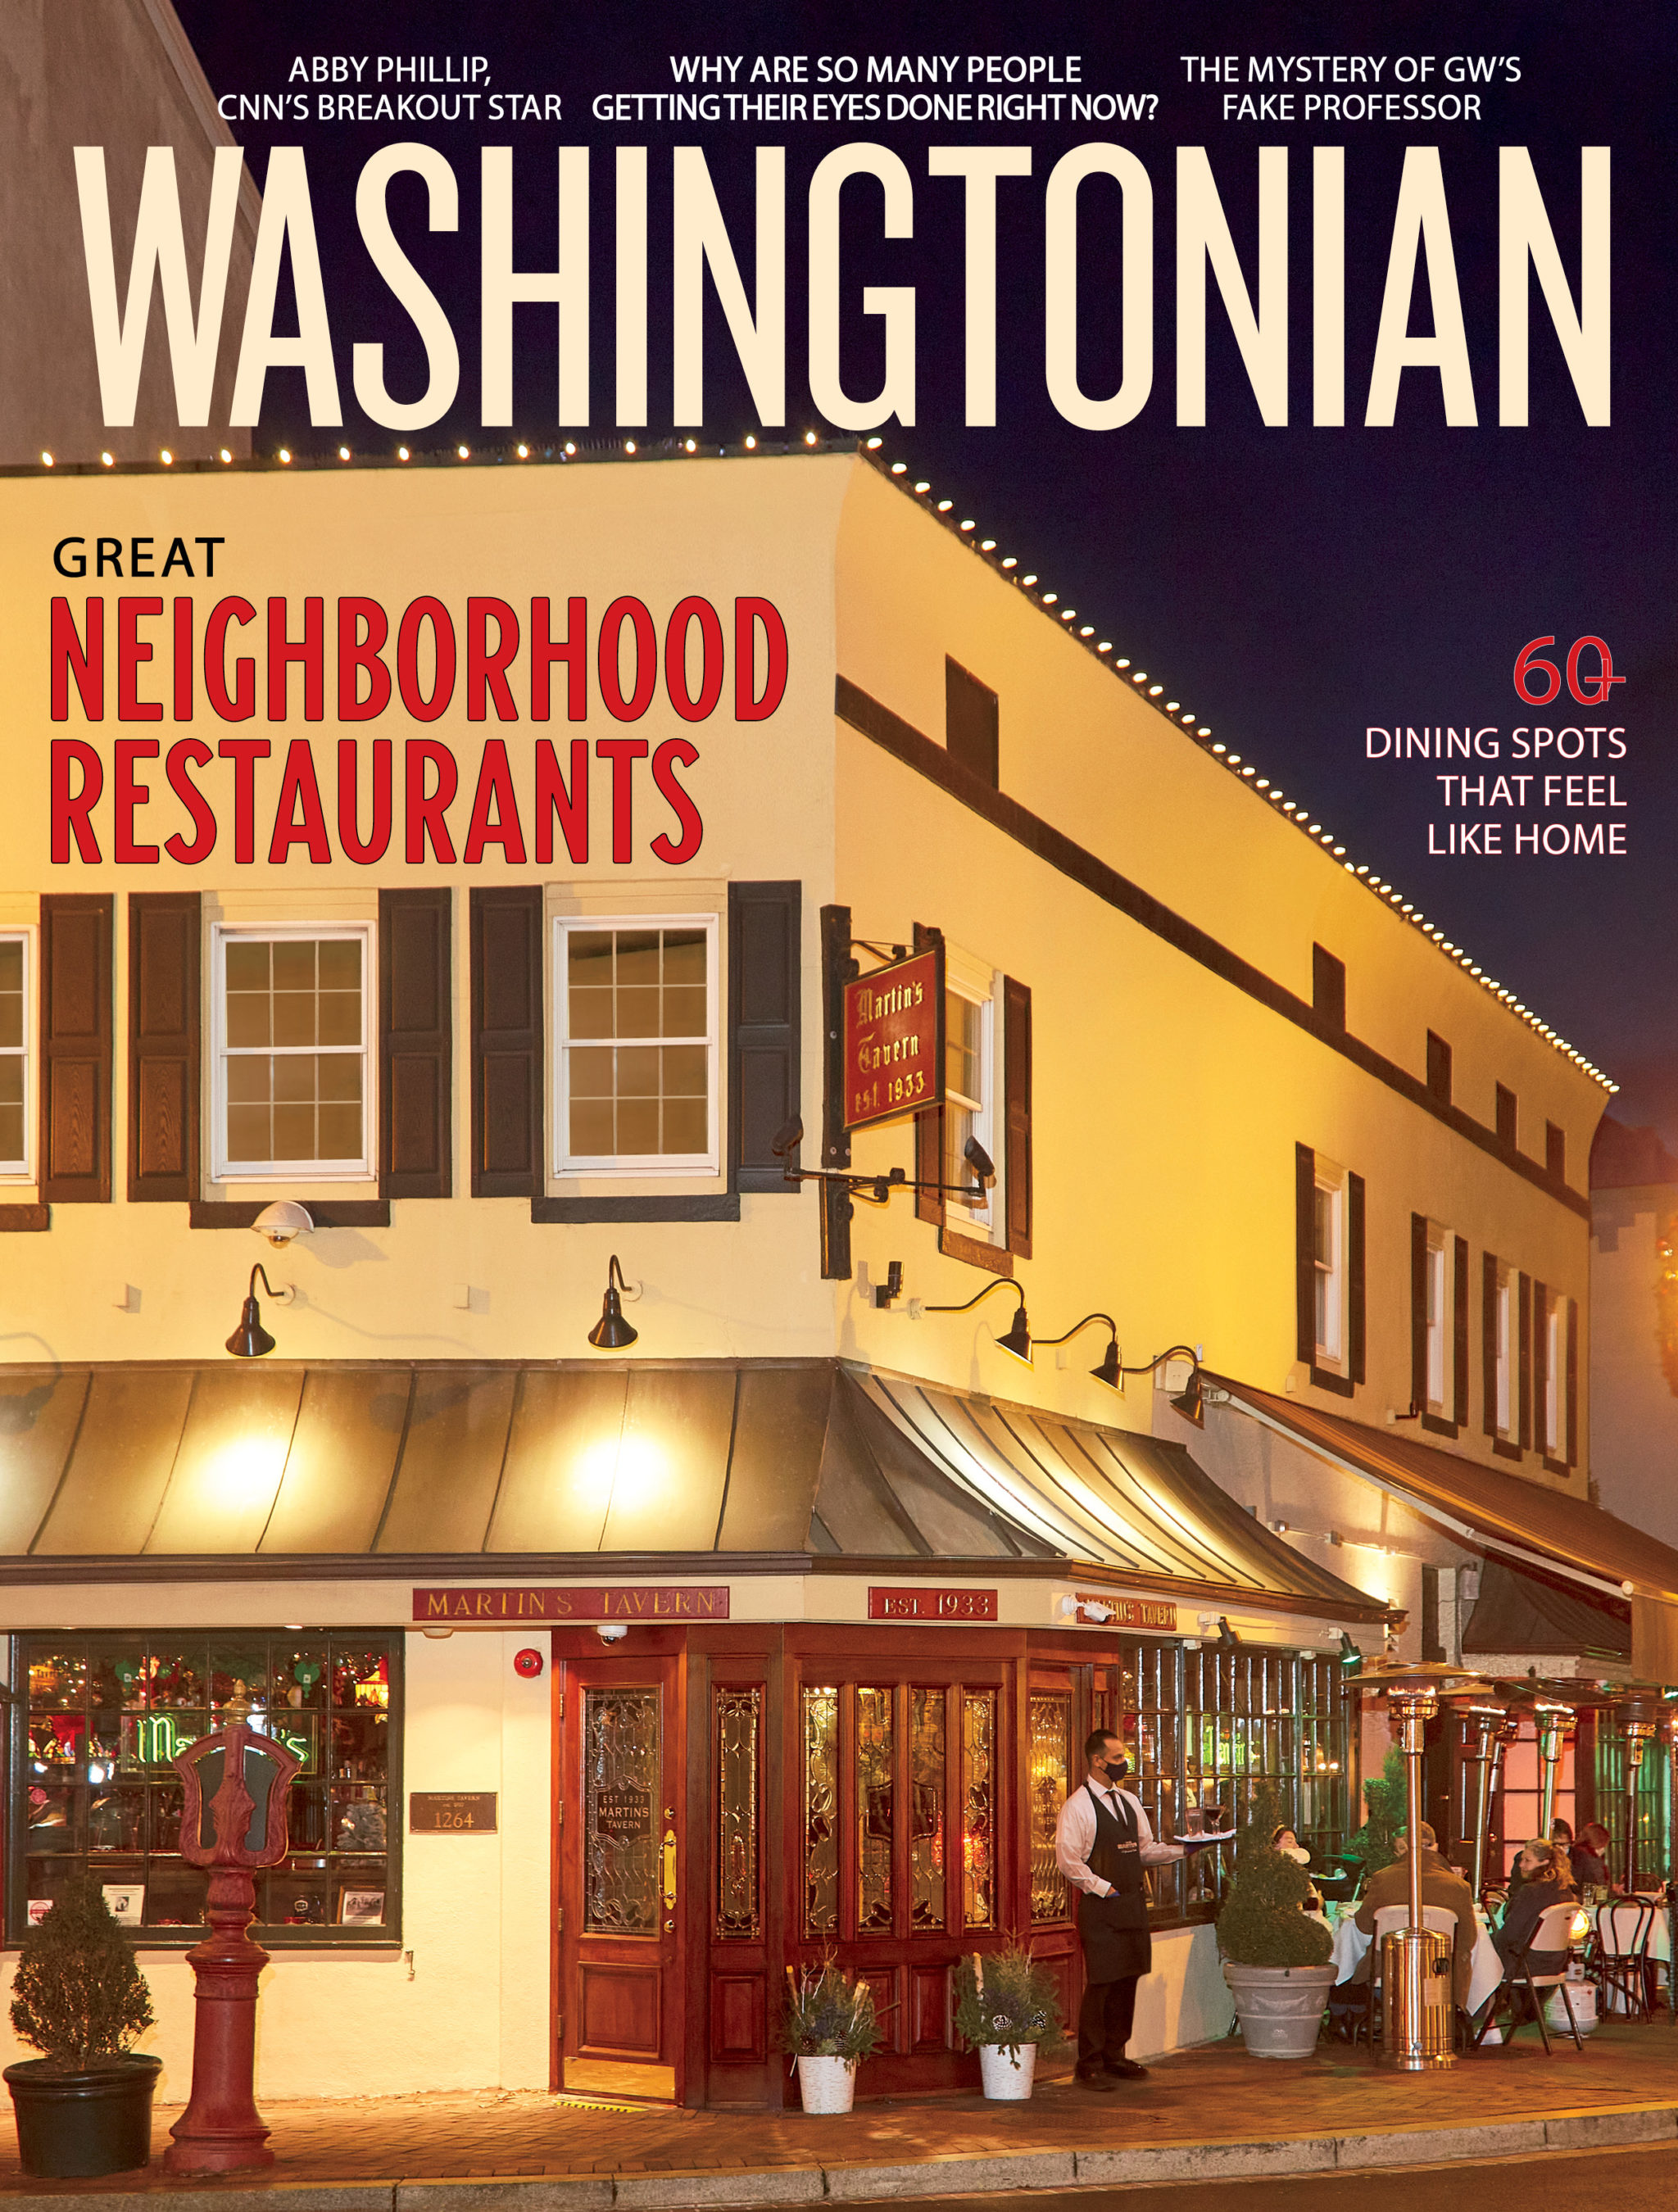 February 2021: Great Neighborhood Restaurants